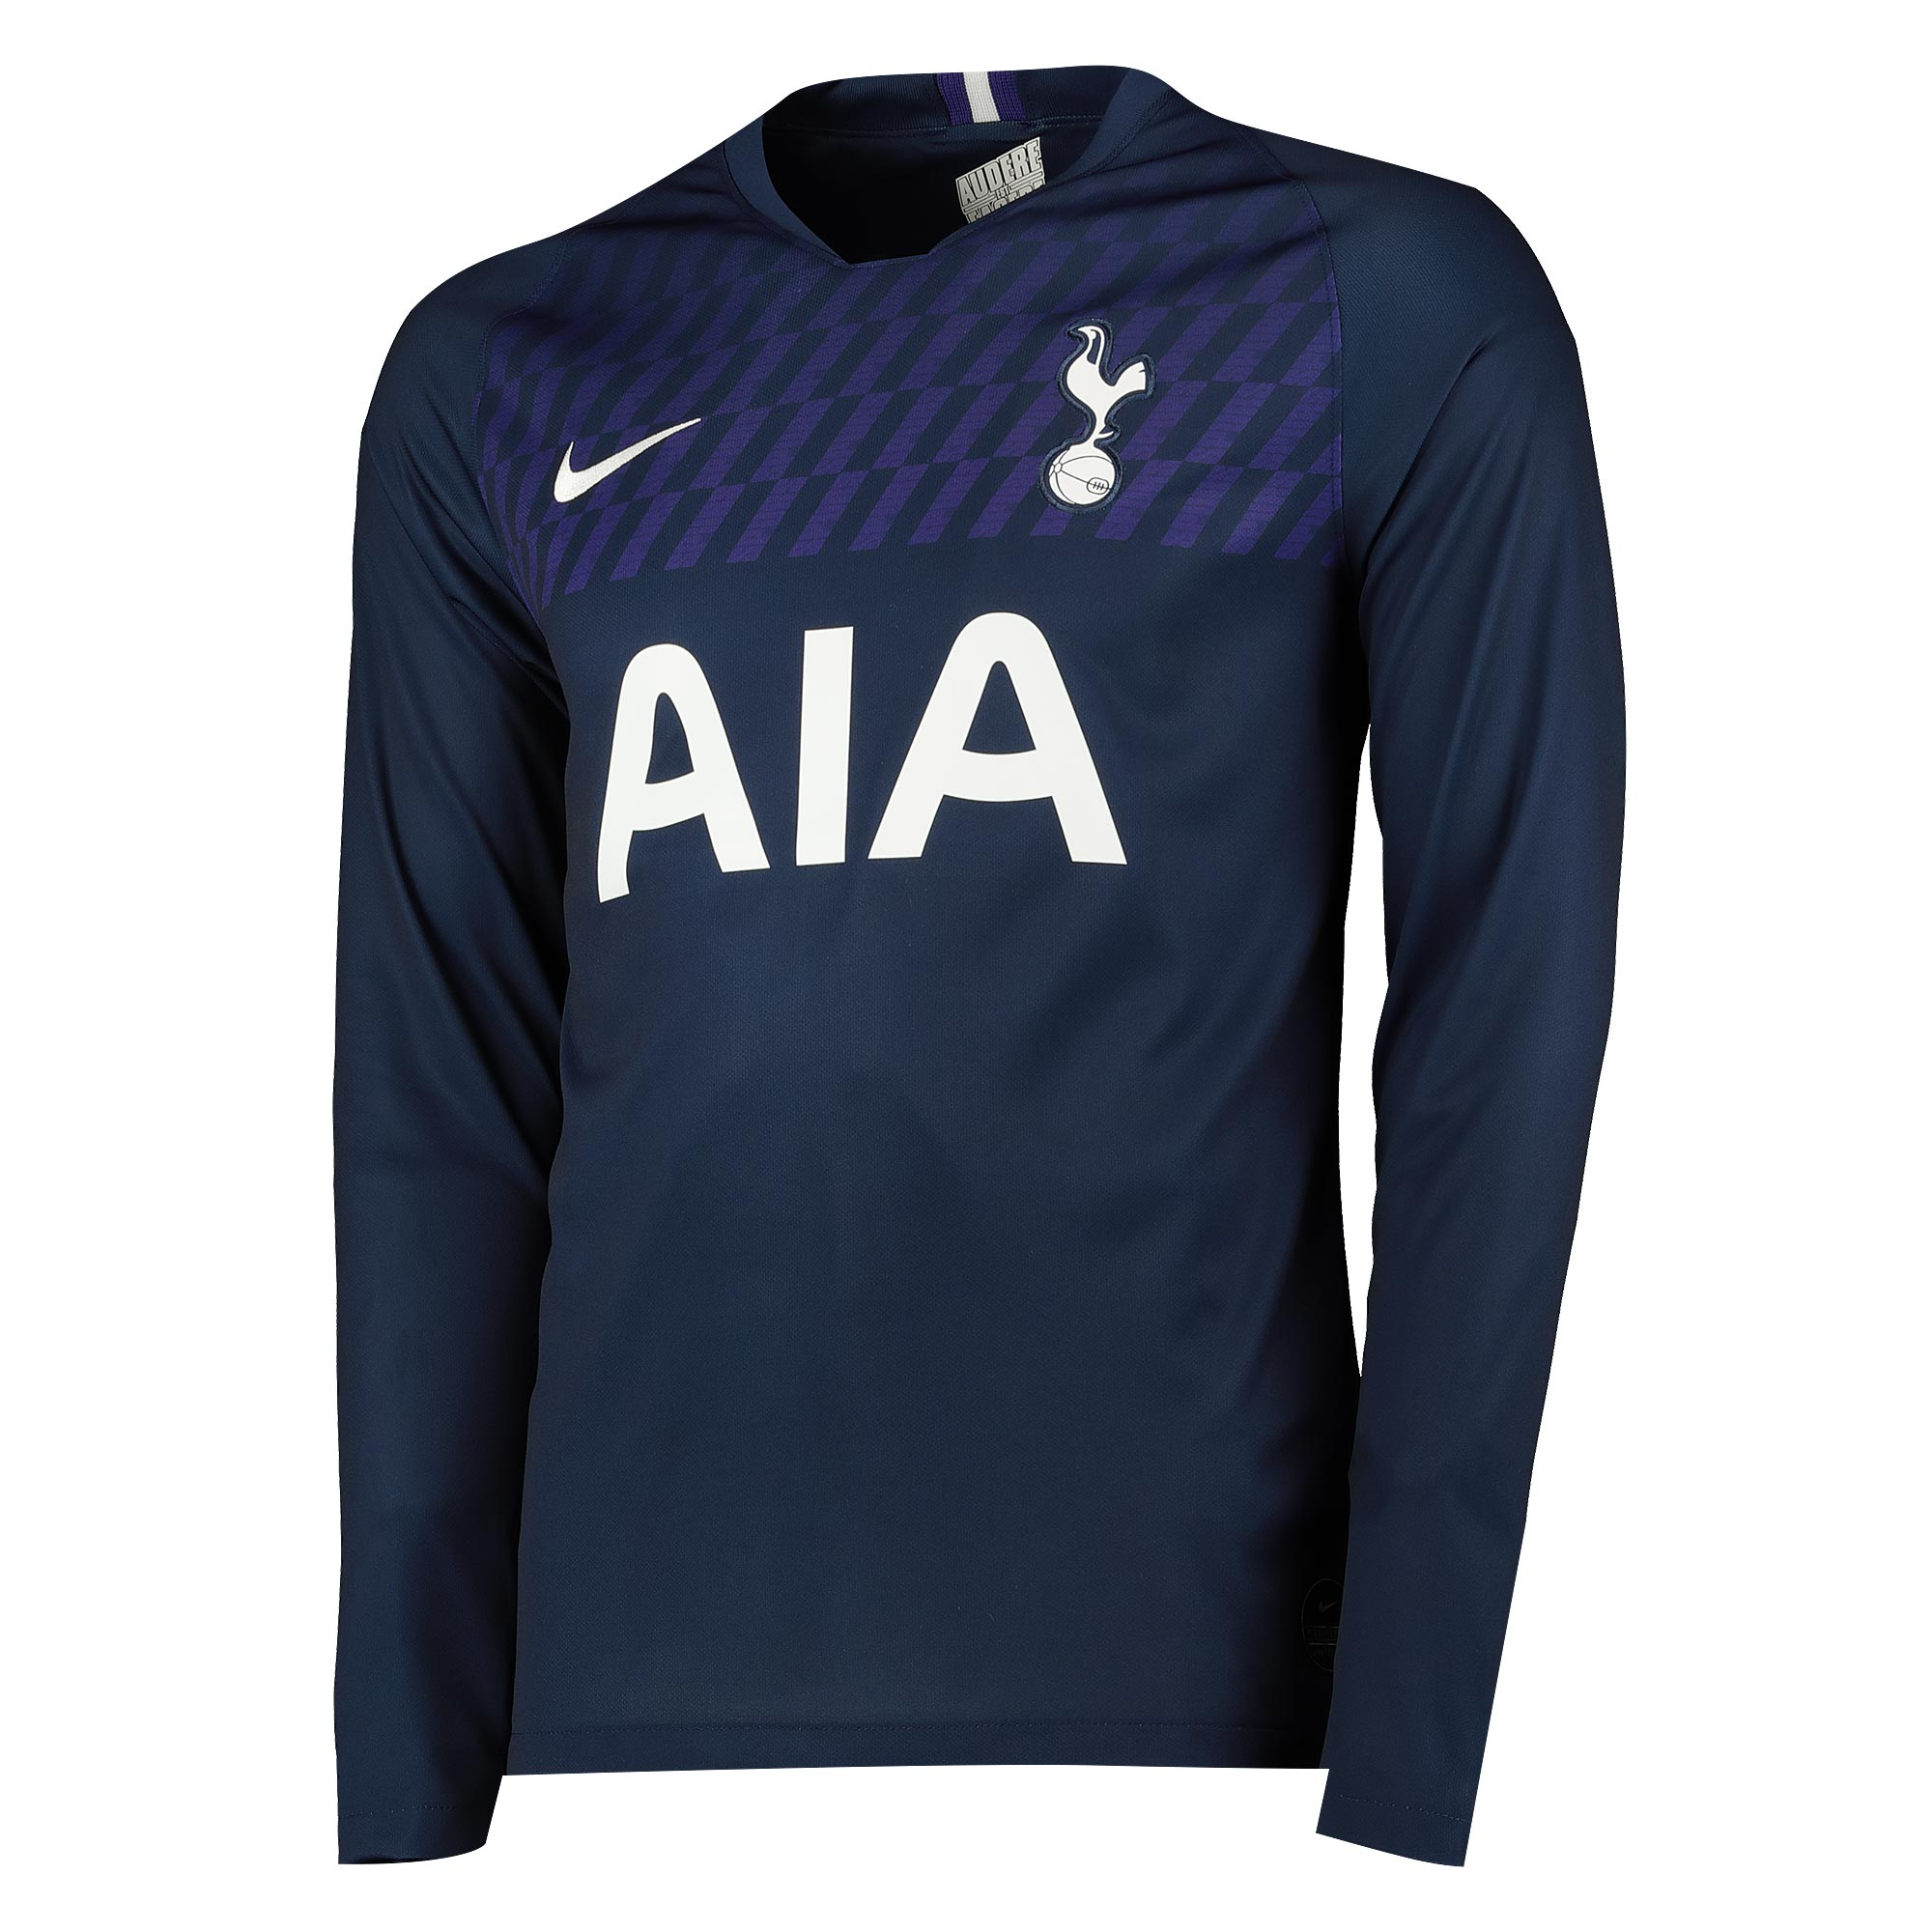 Tottenham Hotspur Away Stadium Shirt 2019-20 - Long Sleeve